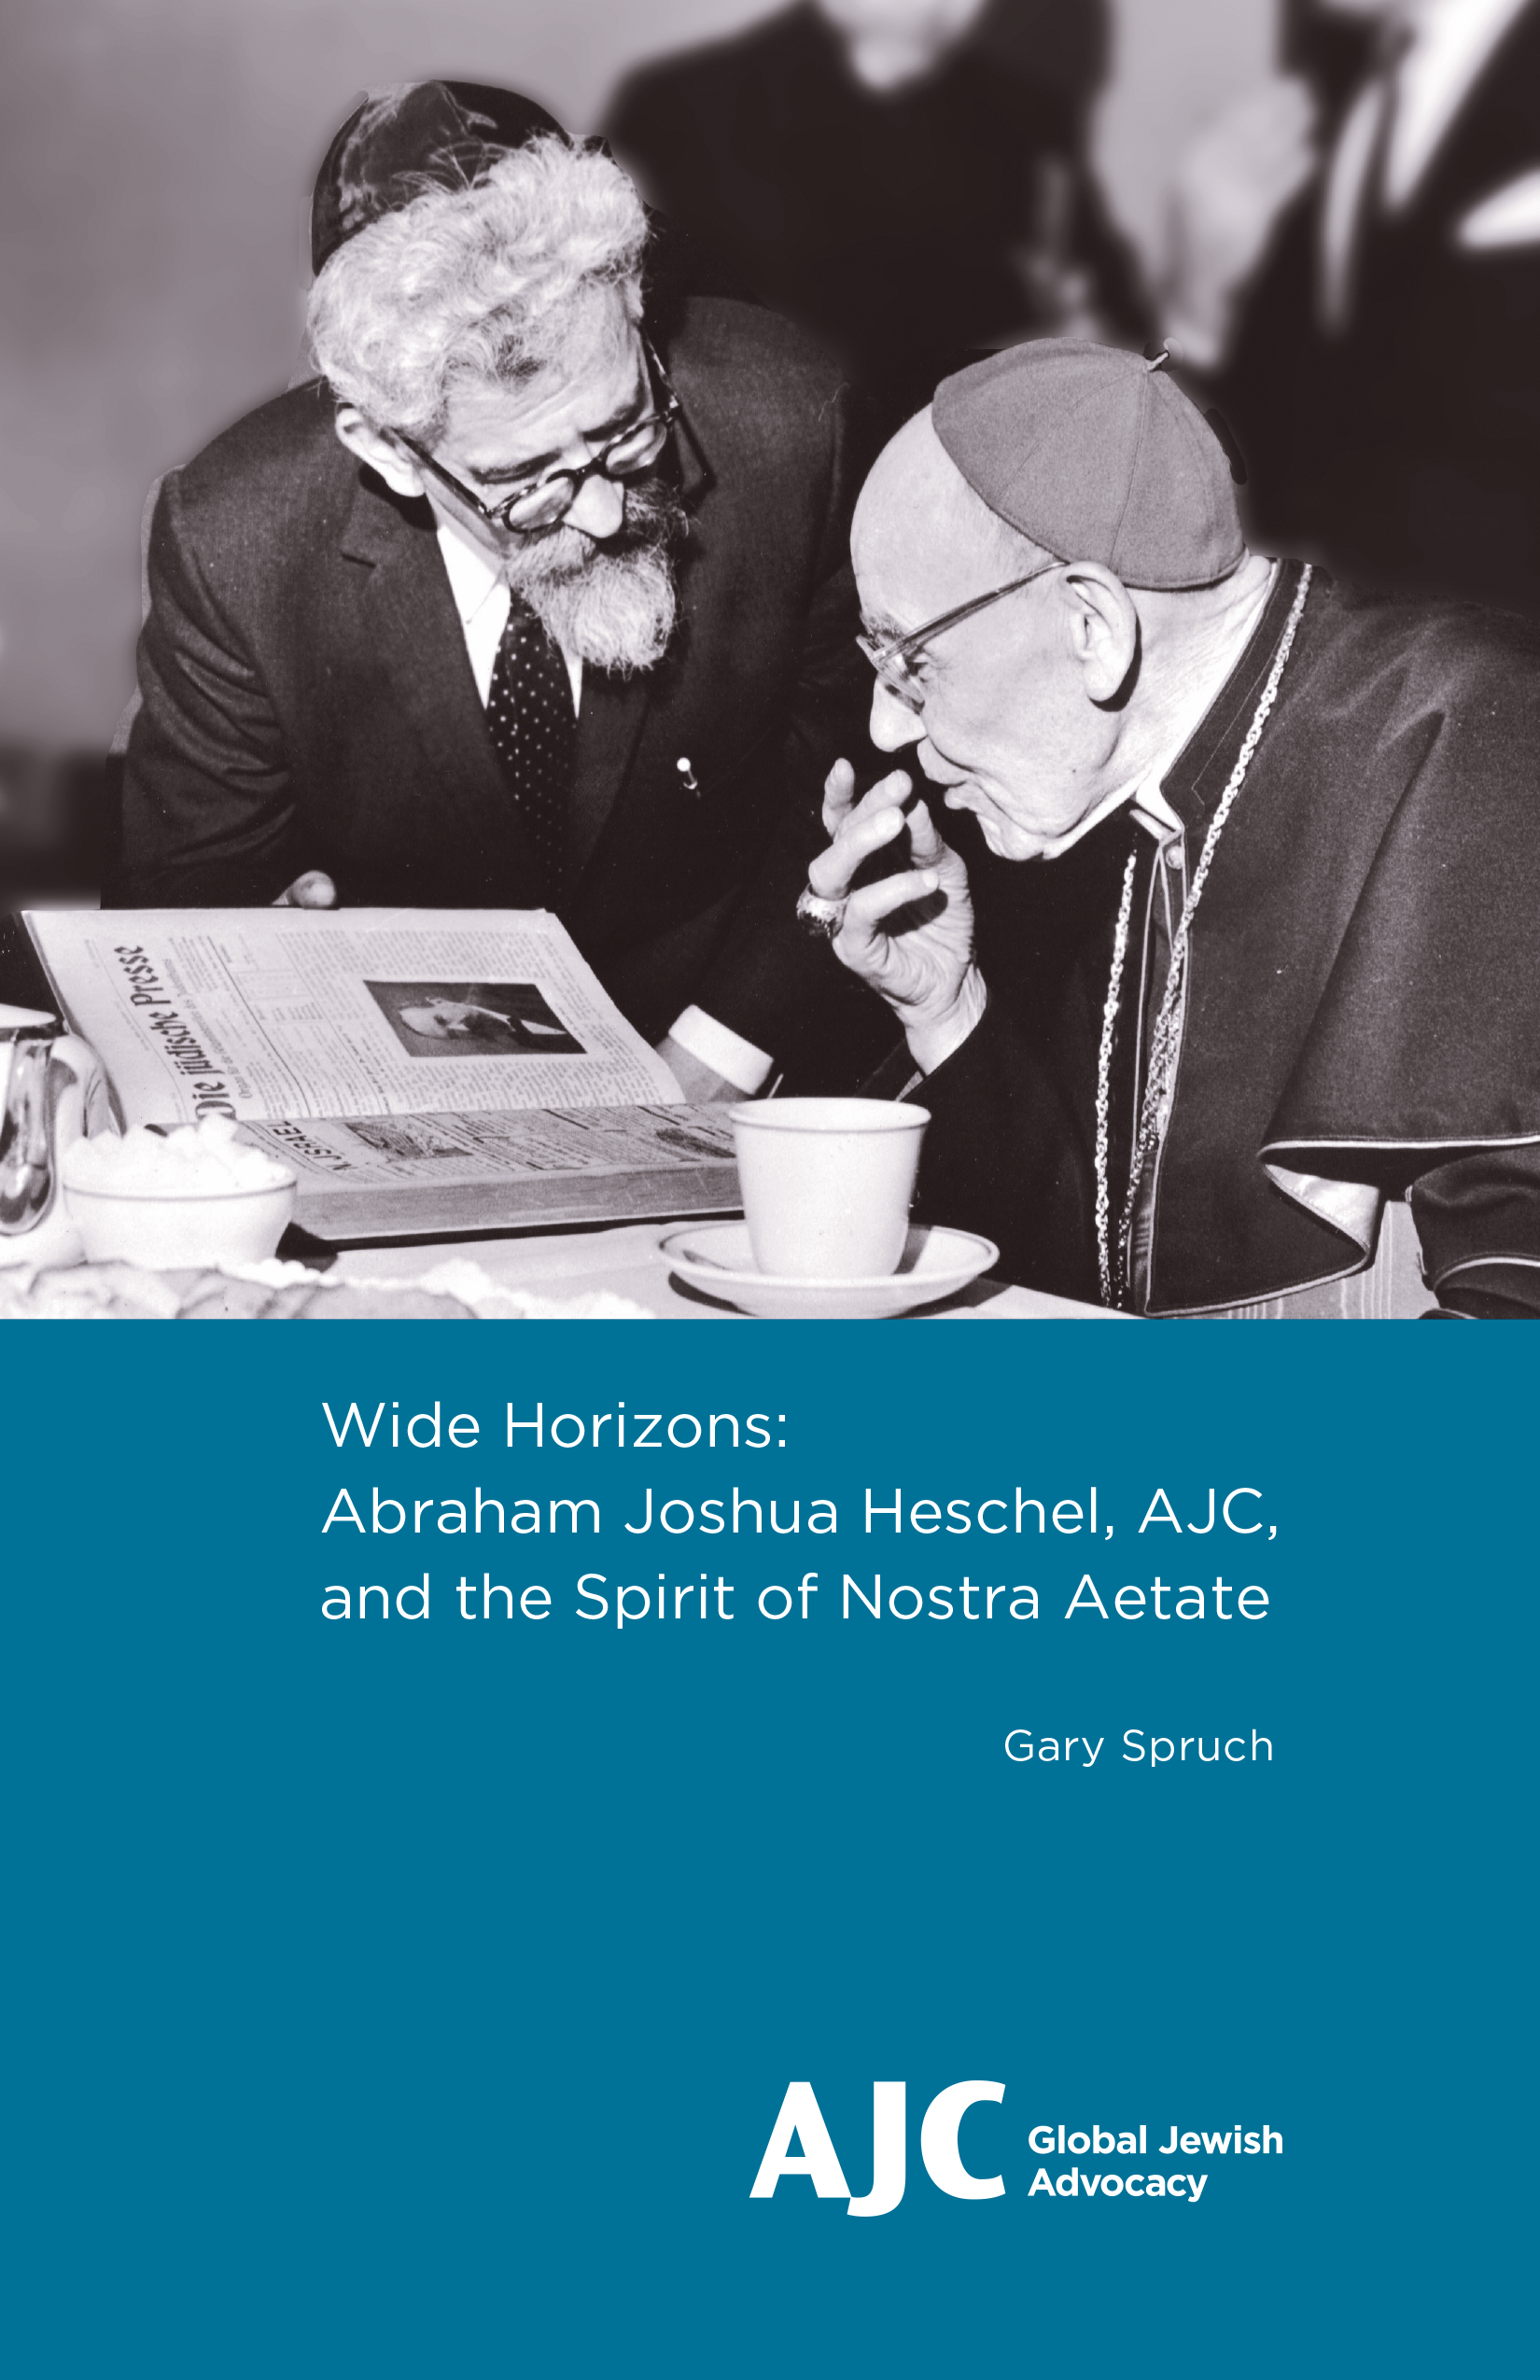 Cover of PDF - Wide Horizons: Abraham Joshua Heschel, AJC, and the Spirit of Nostra Aetate